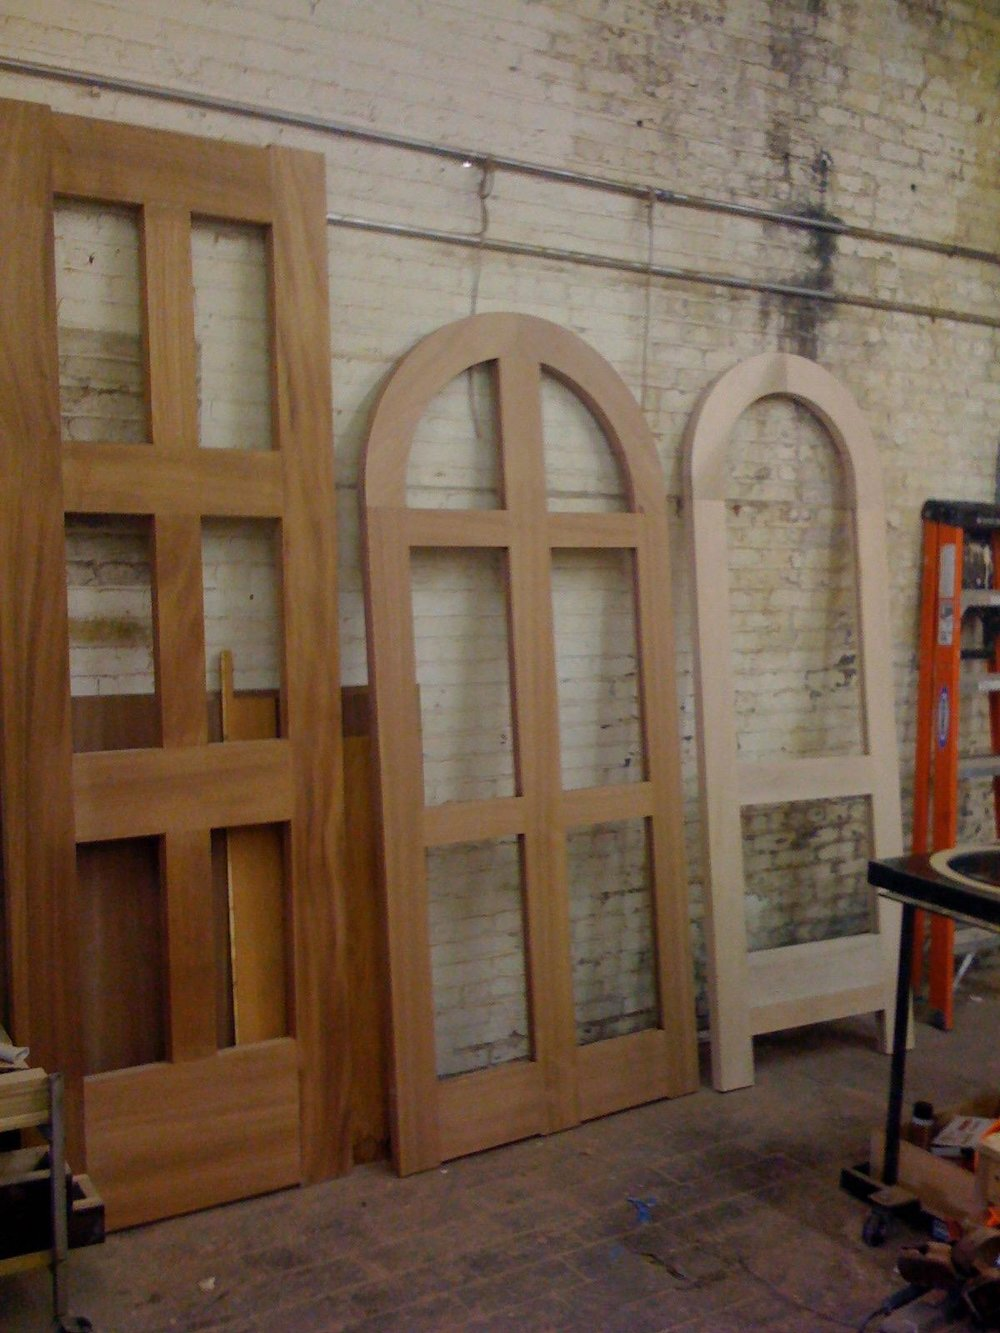 mahogany_doors_in_process_2.jpg